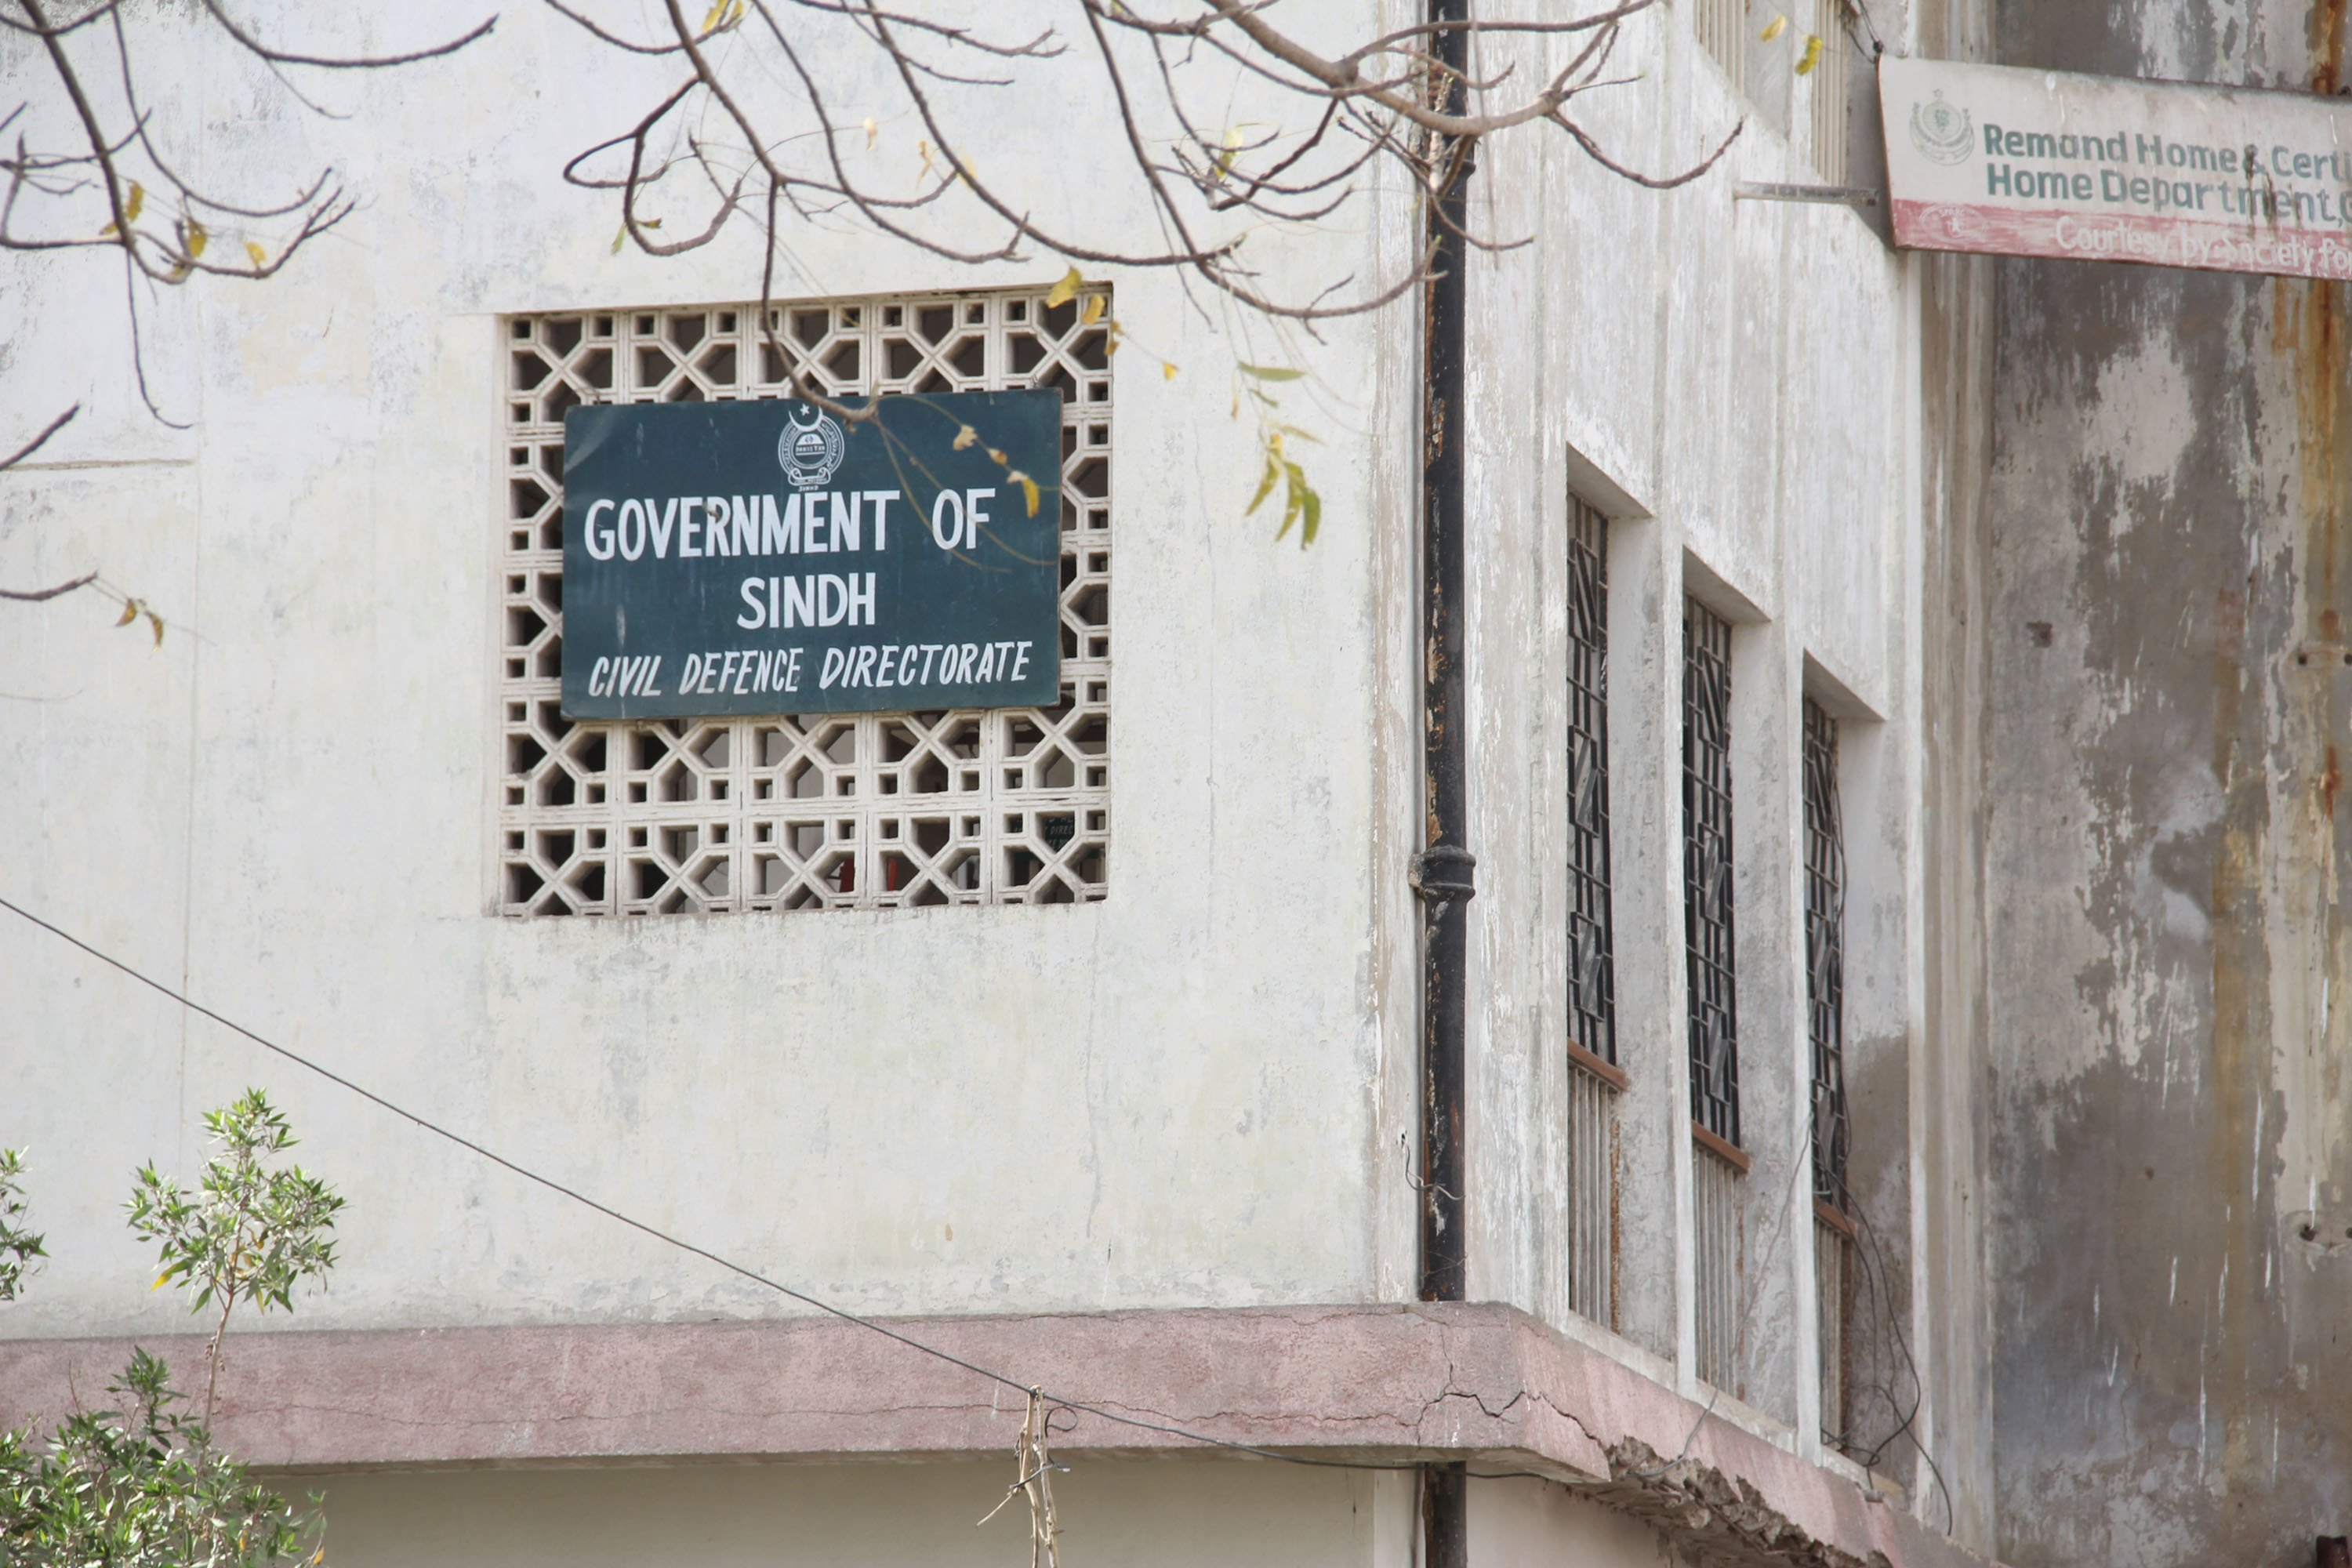 hung out to dry no funds equipment for sindh s civil defence